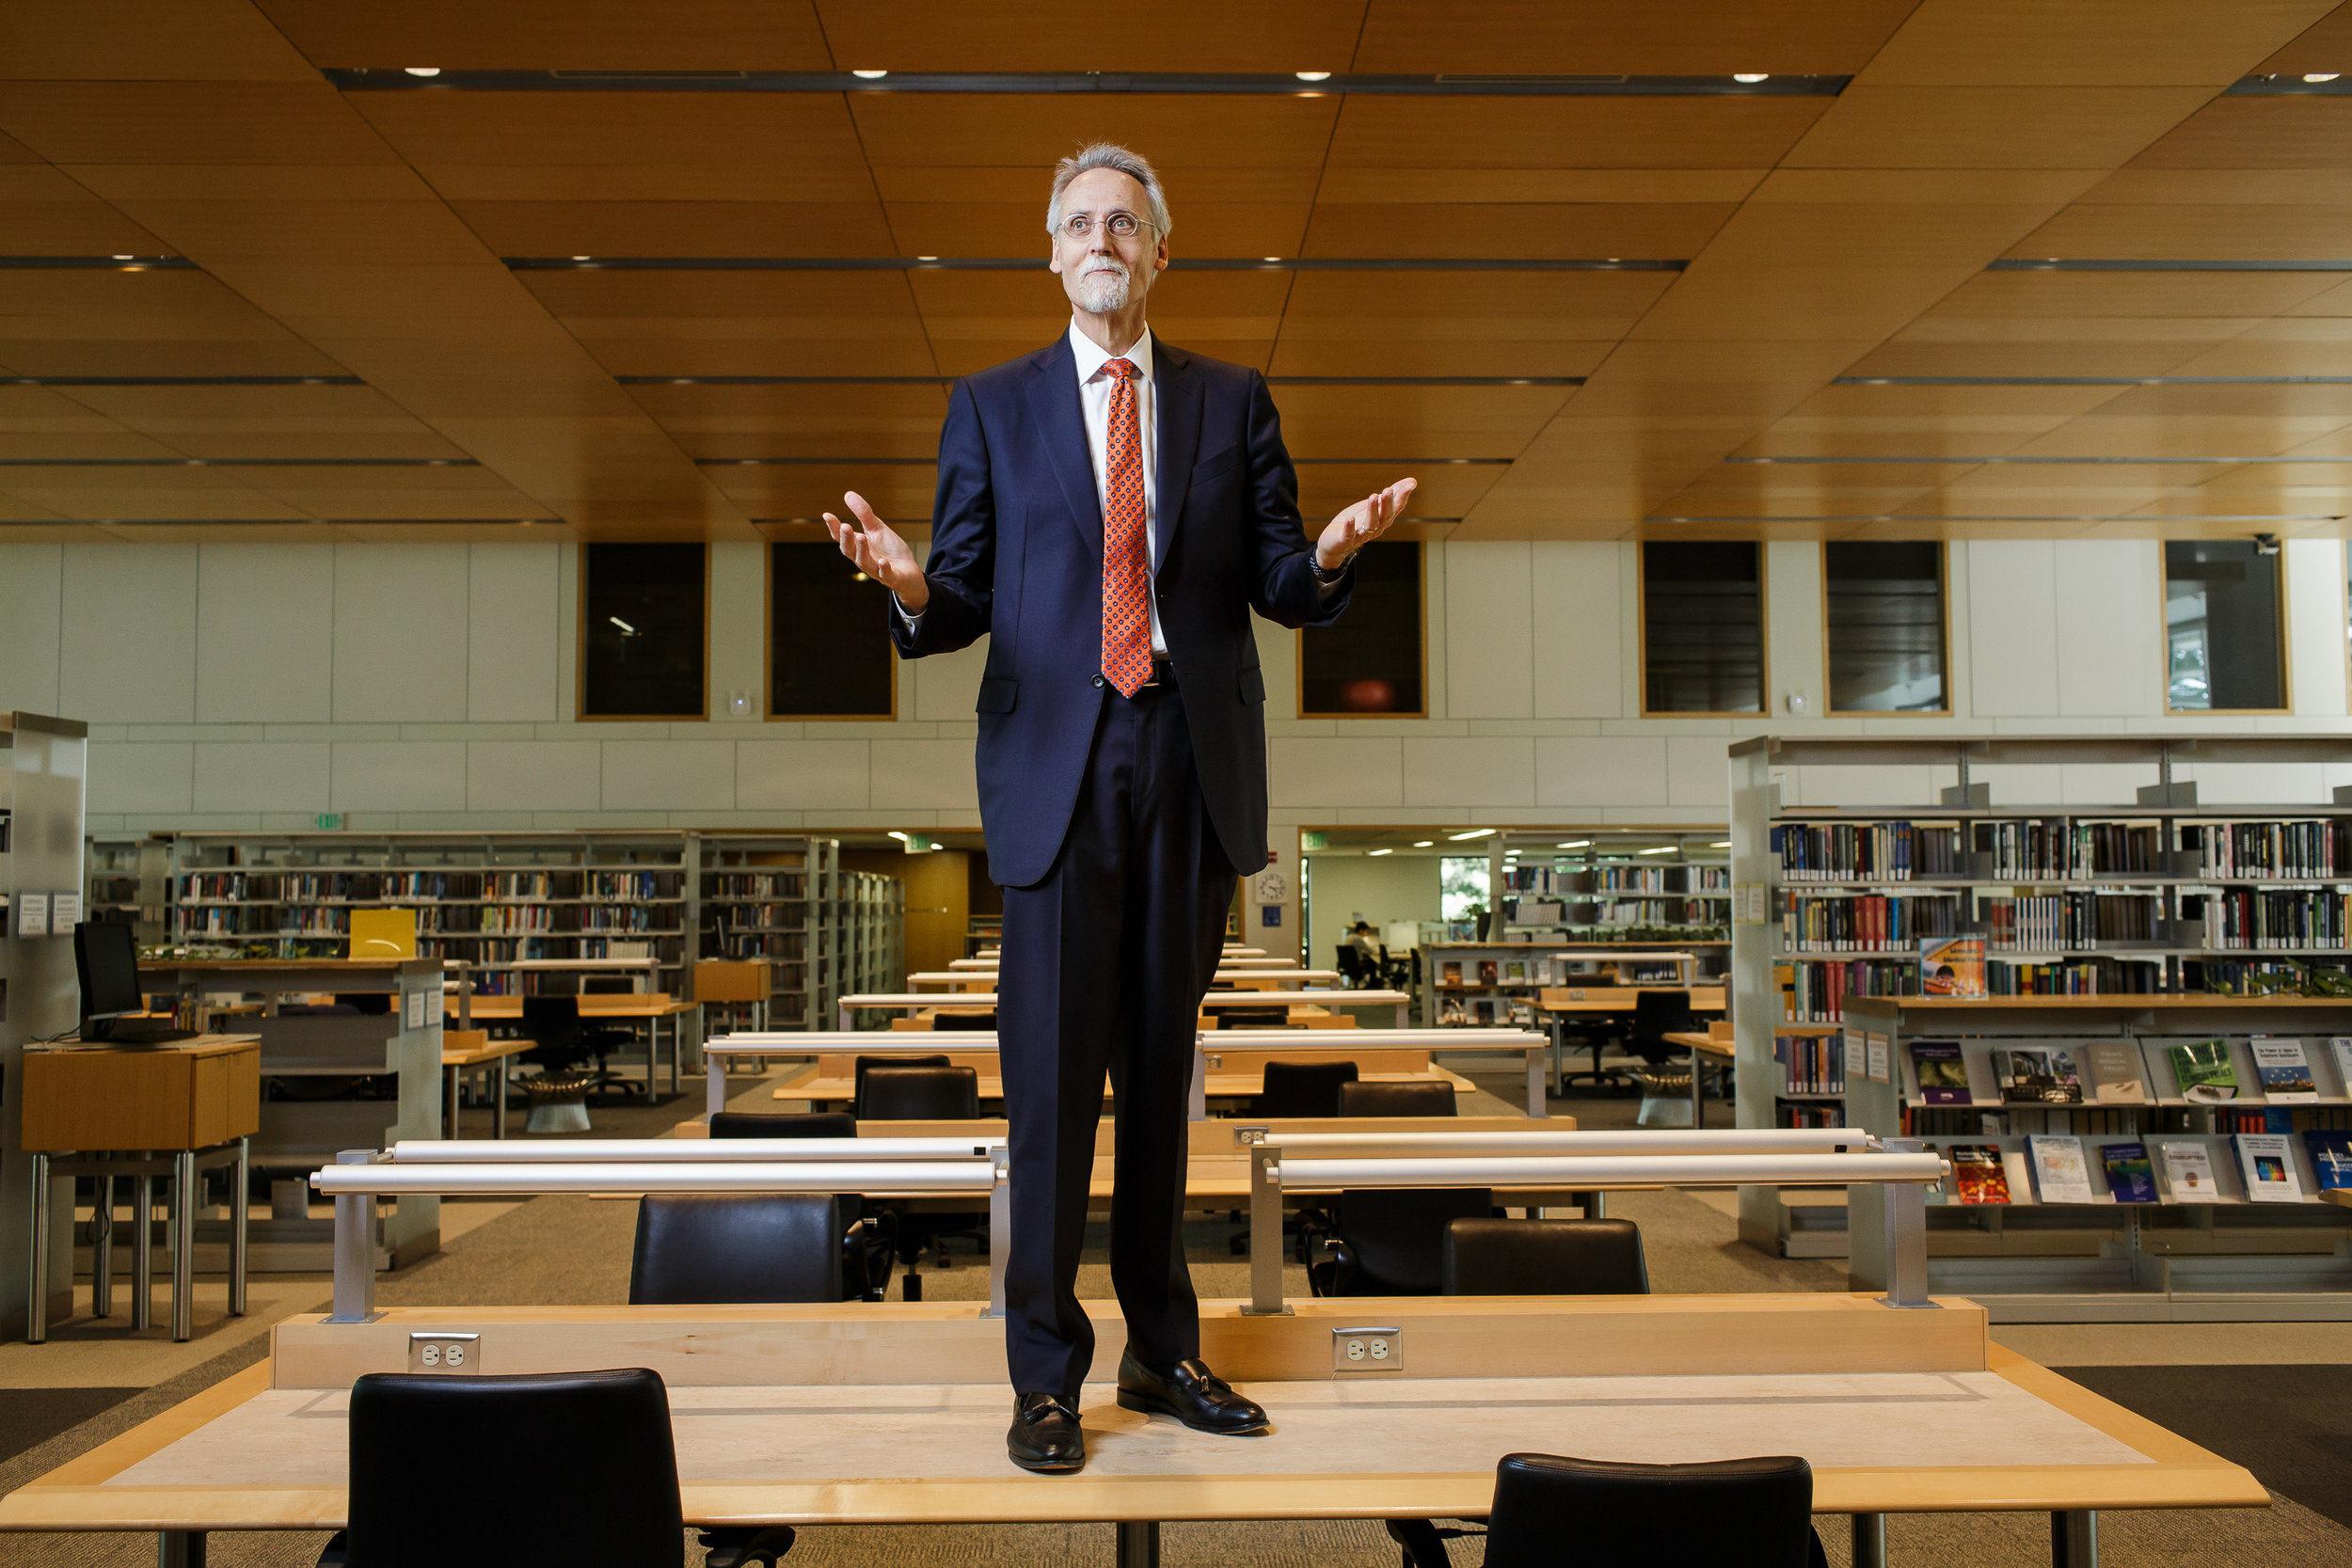 Portrait of Dr. Dean Boulding of Duke Fuqua School of Business